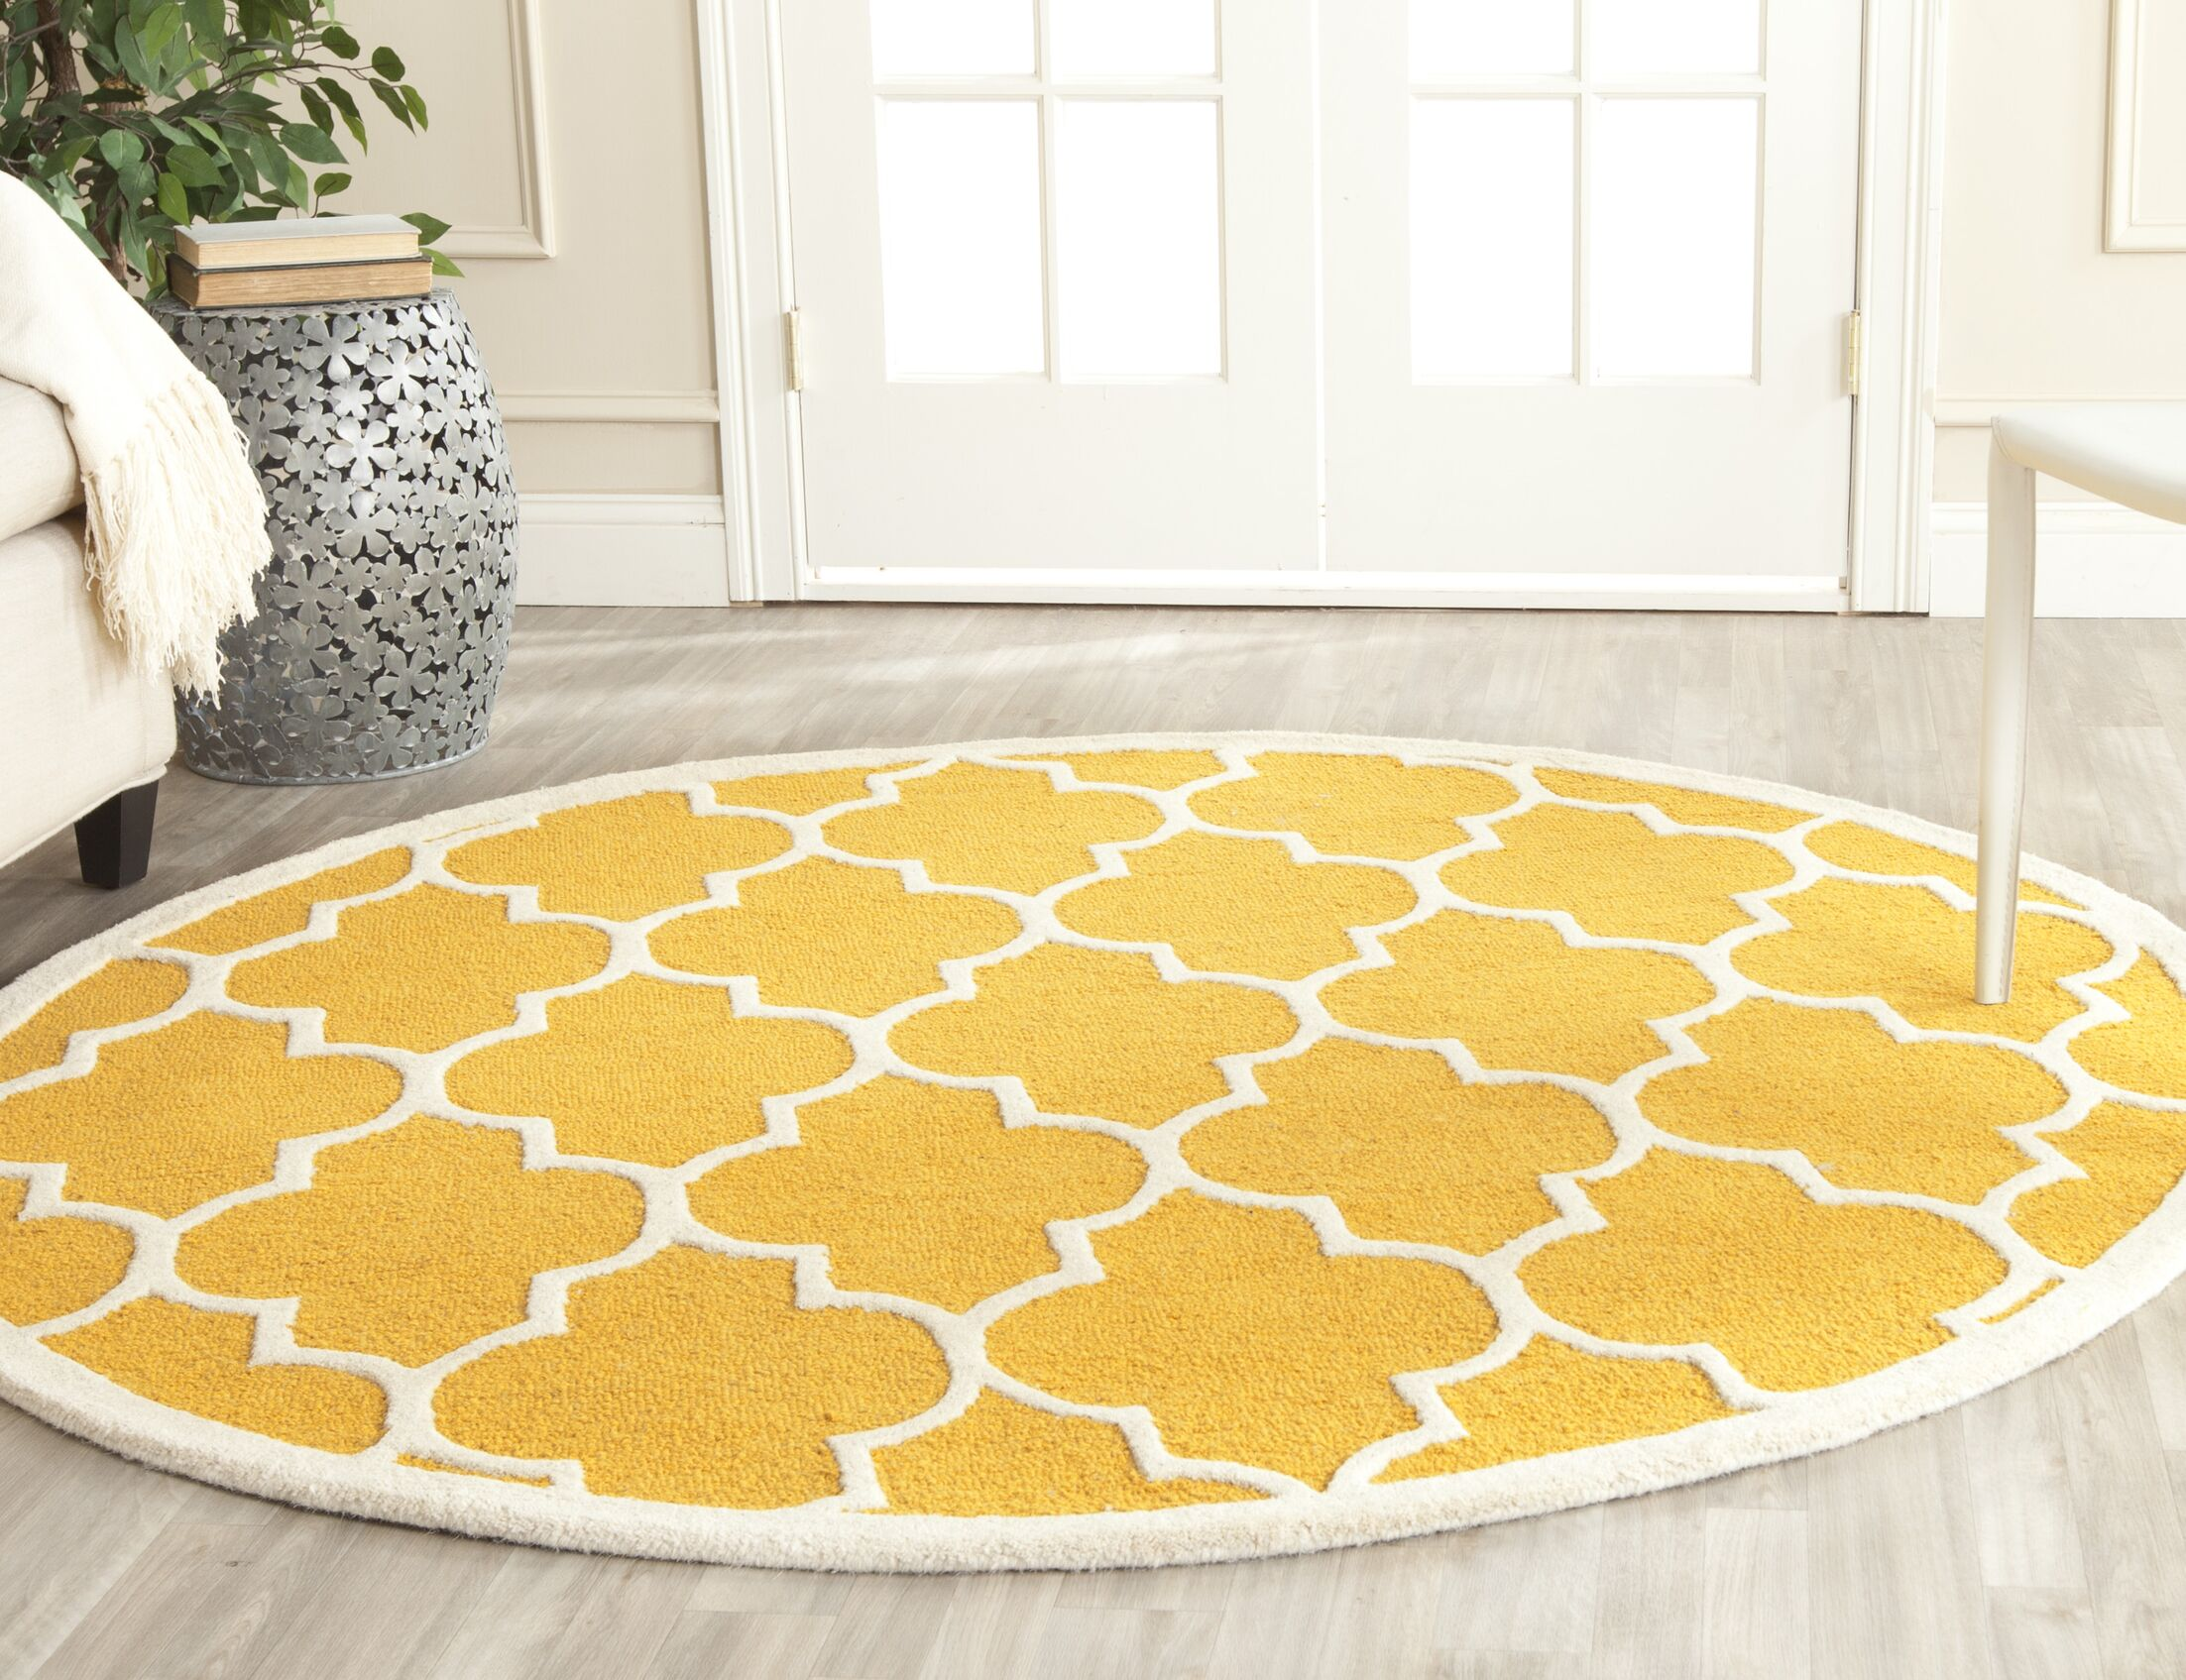 Parker Lane Hand-Tufted Wool Gold/Ivory Area Rug Rug Size: Square 8'